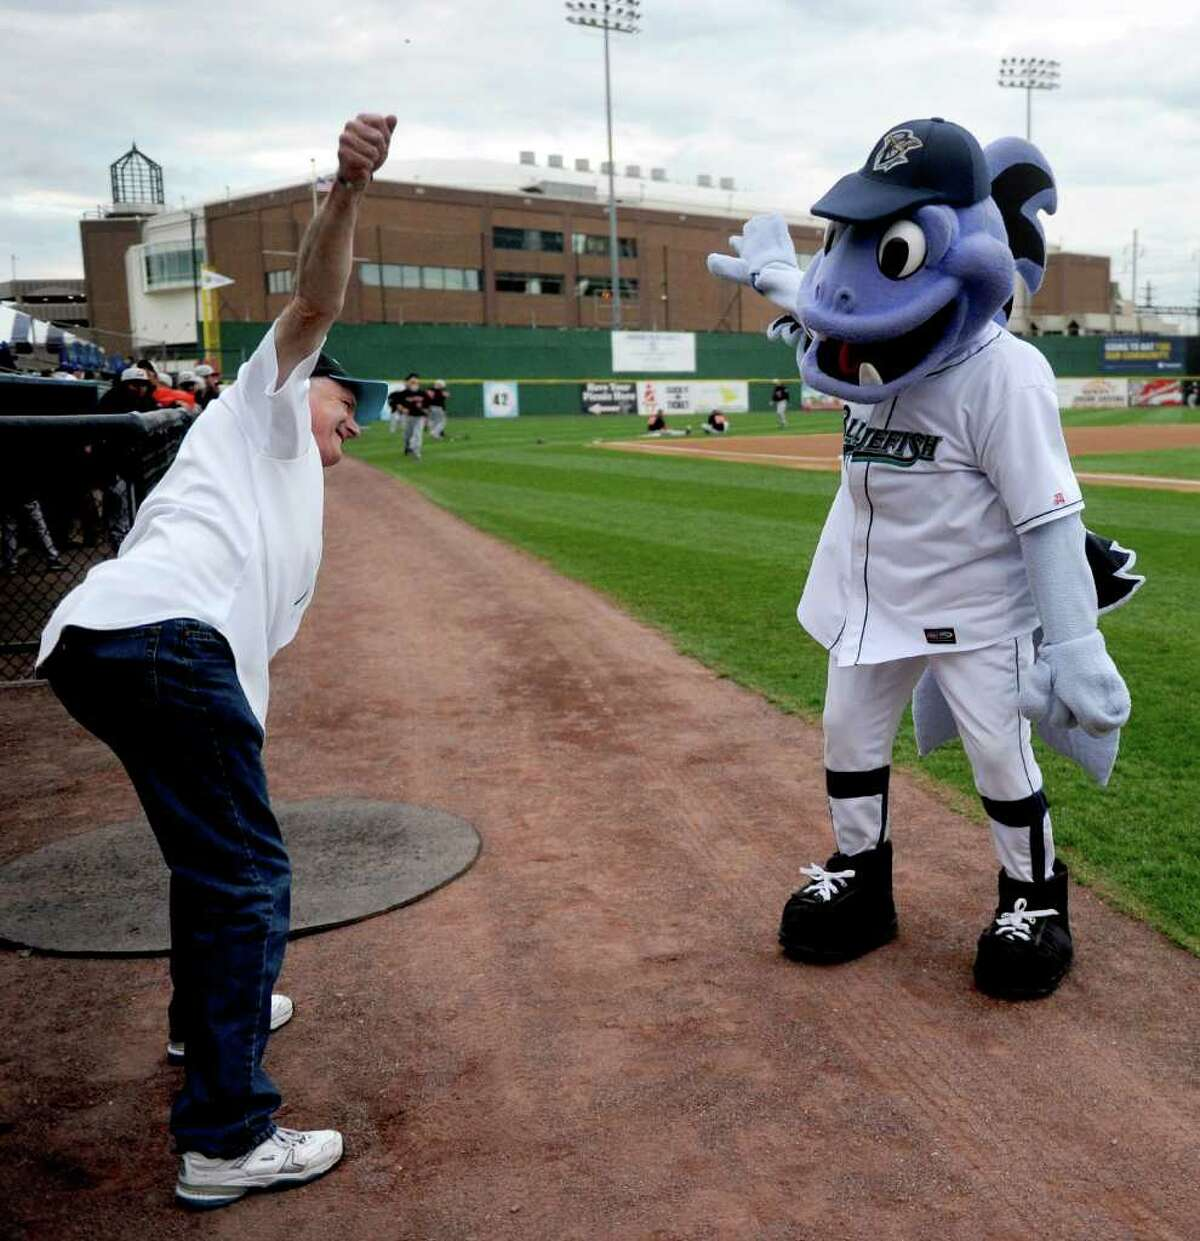 Bridgeport Mayor Bill Finch gets some warm-up advice from Bluefish mascot B.B before throwing out the first pitch during Friday's Bluefish game at the Ballpark at Harbor Yard in Bridgeport on April 29, 2011.